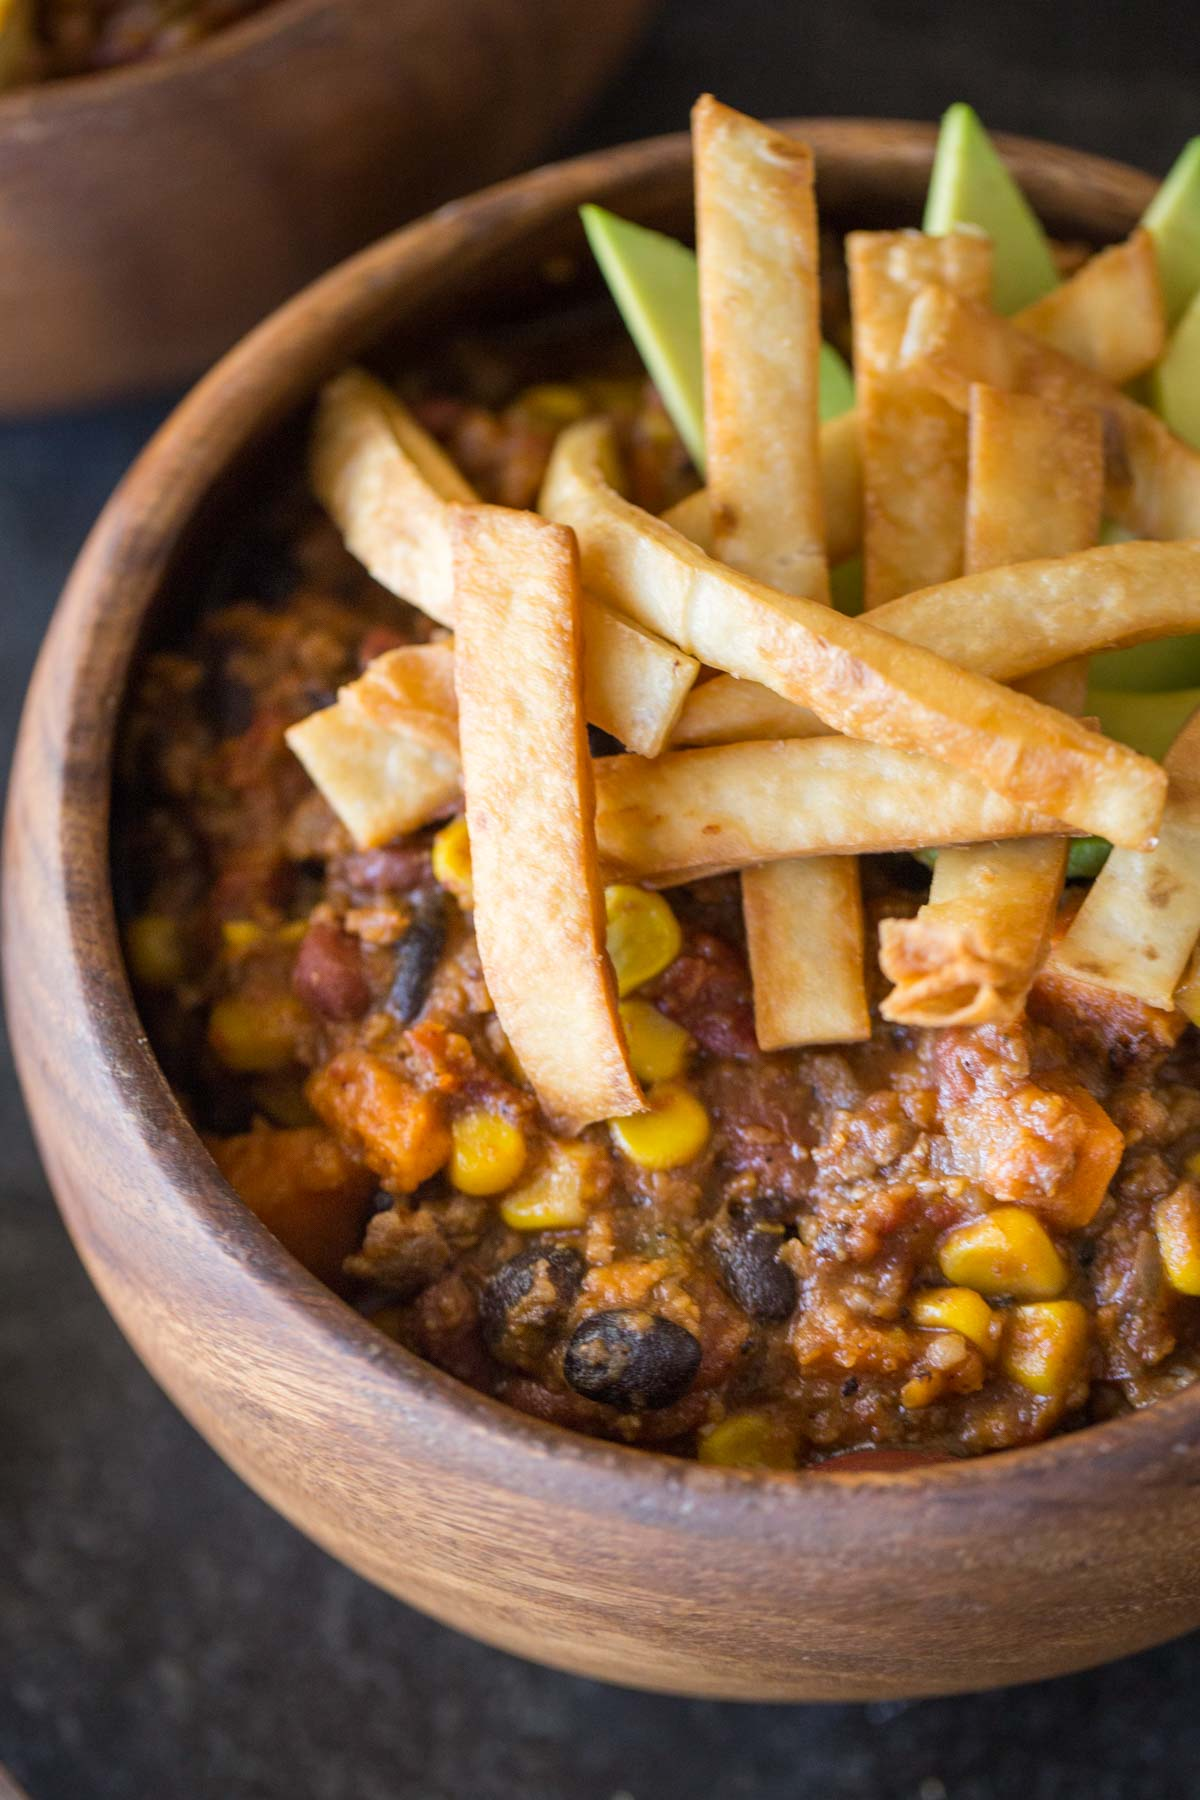 A wood bowl of Sweet Potato Chili, topped with Fried Tortilla Strips and sliced avocado.